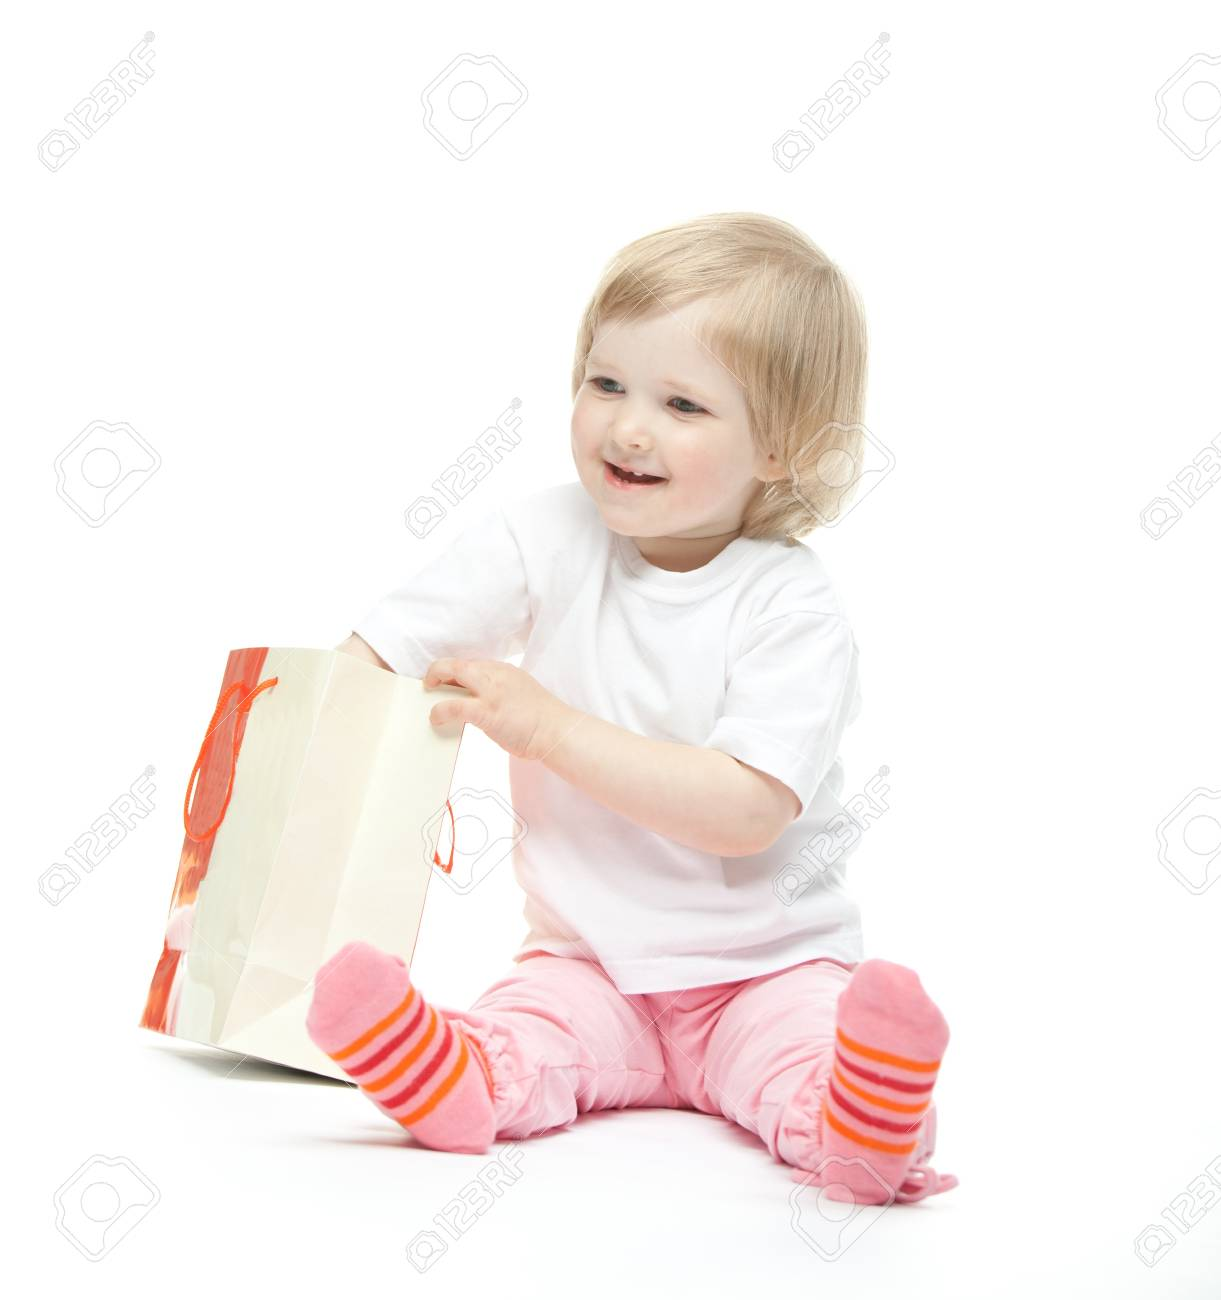 The baby girl finds a present. White background Stock Photo - 11174310